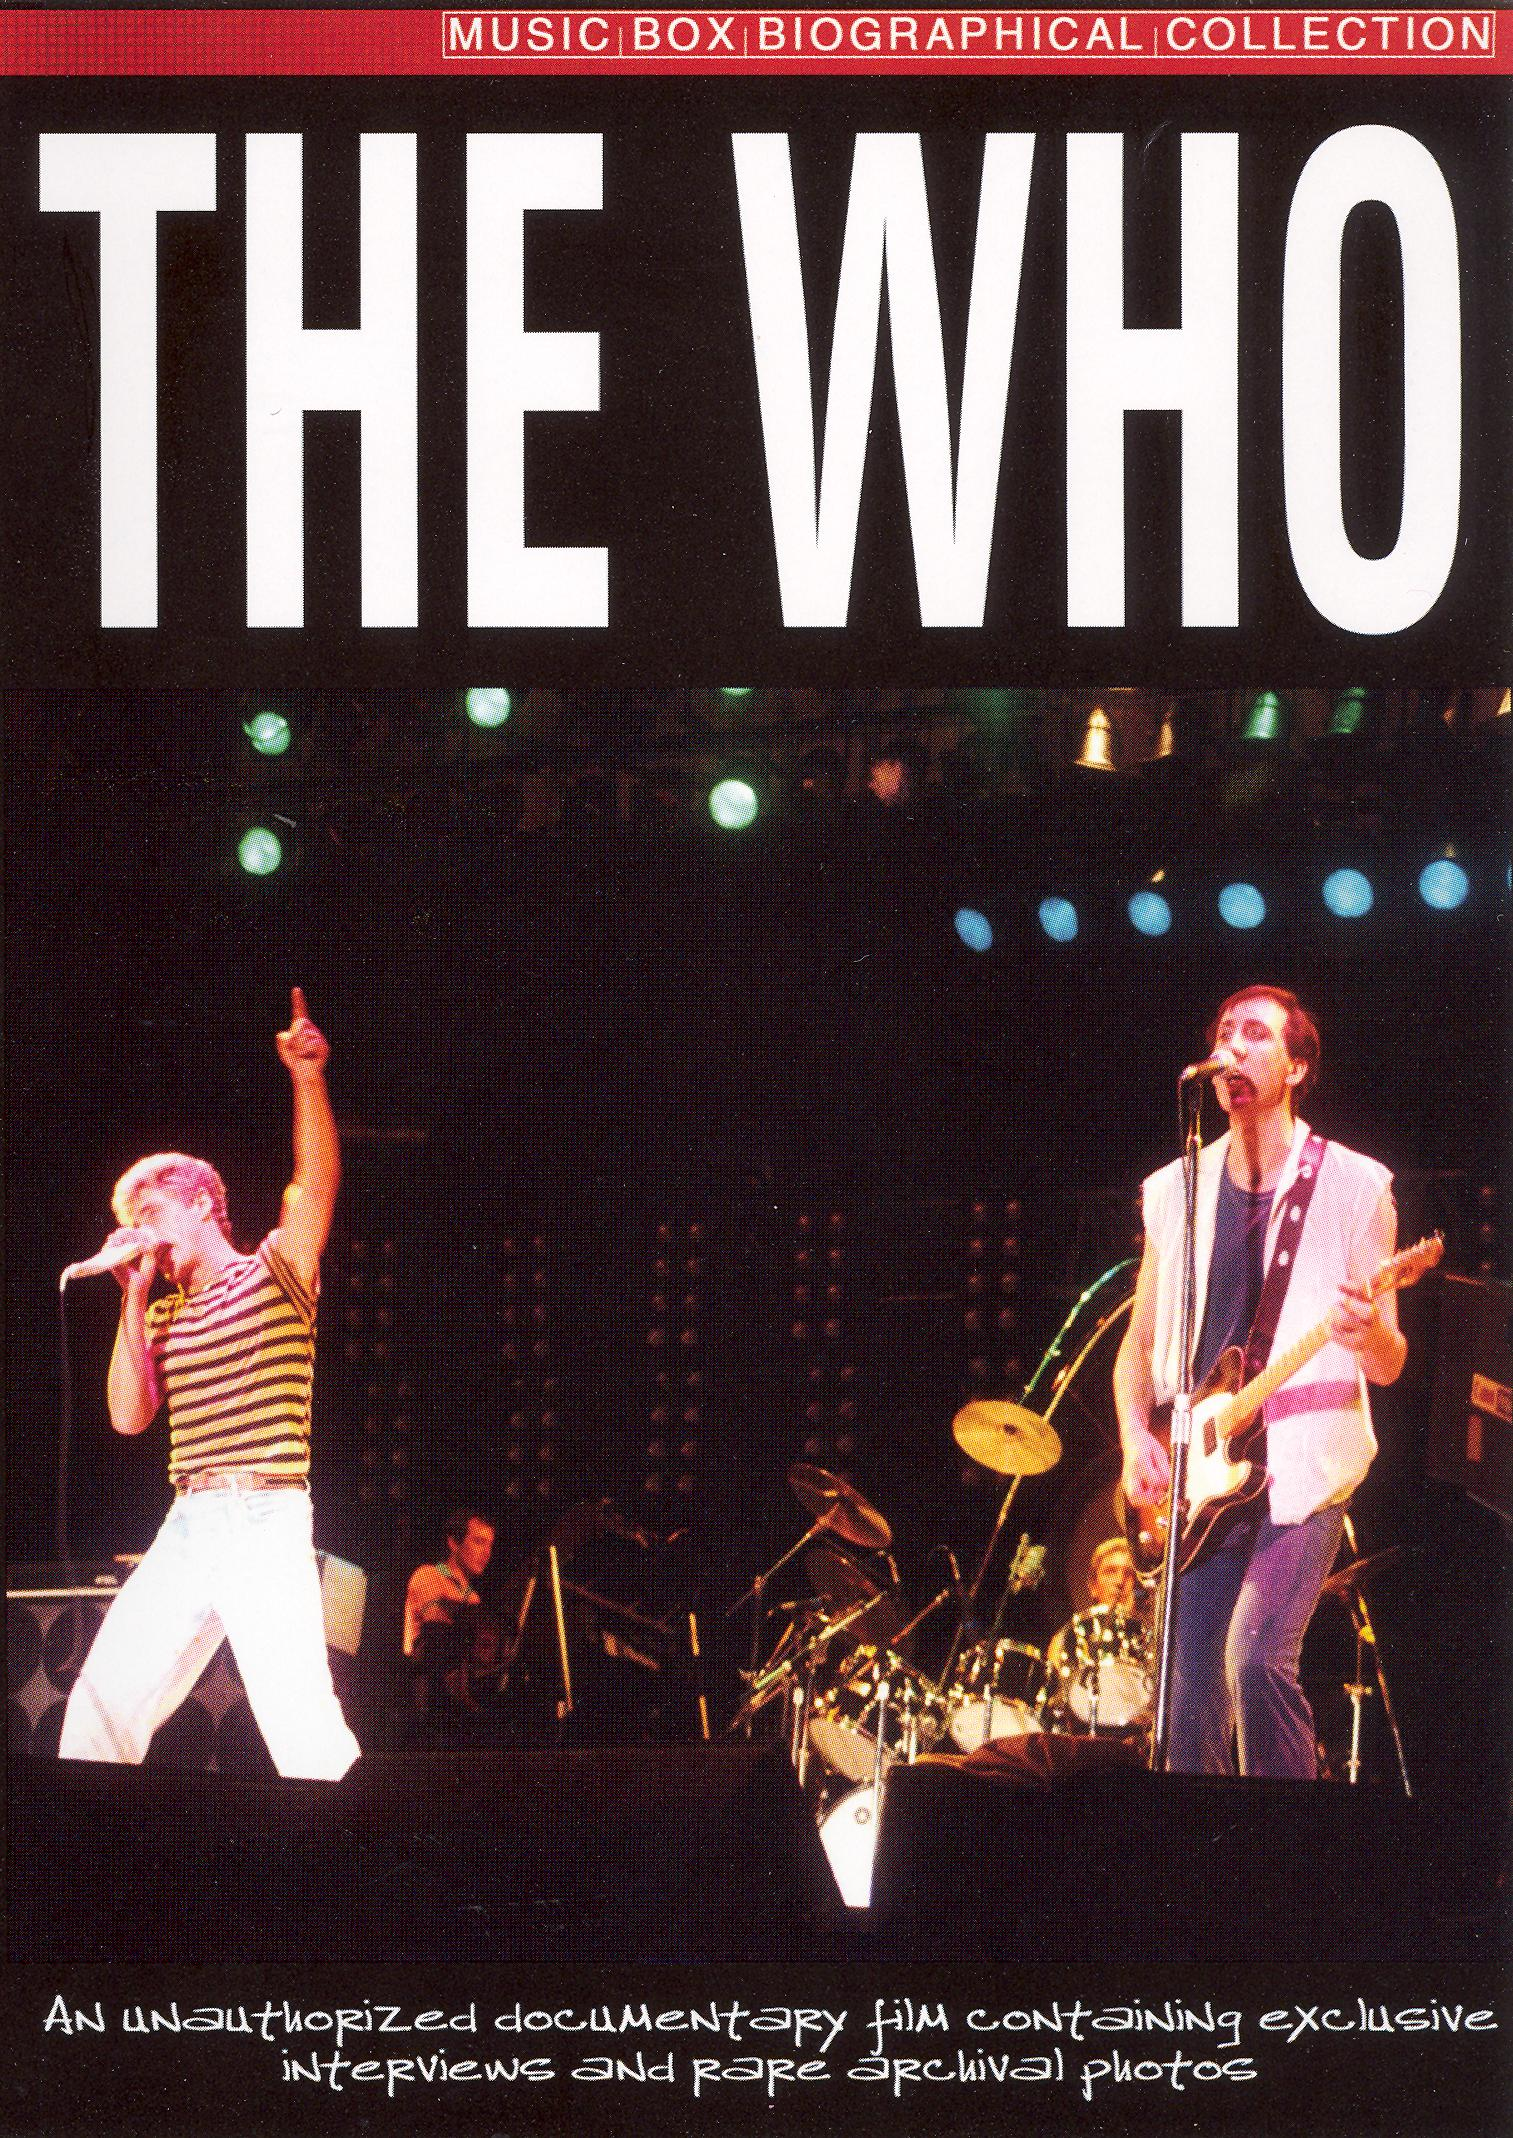 Music Box Biographical Collection: The Who